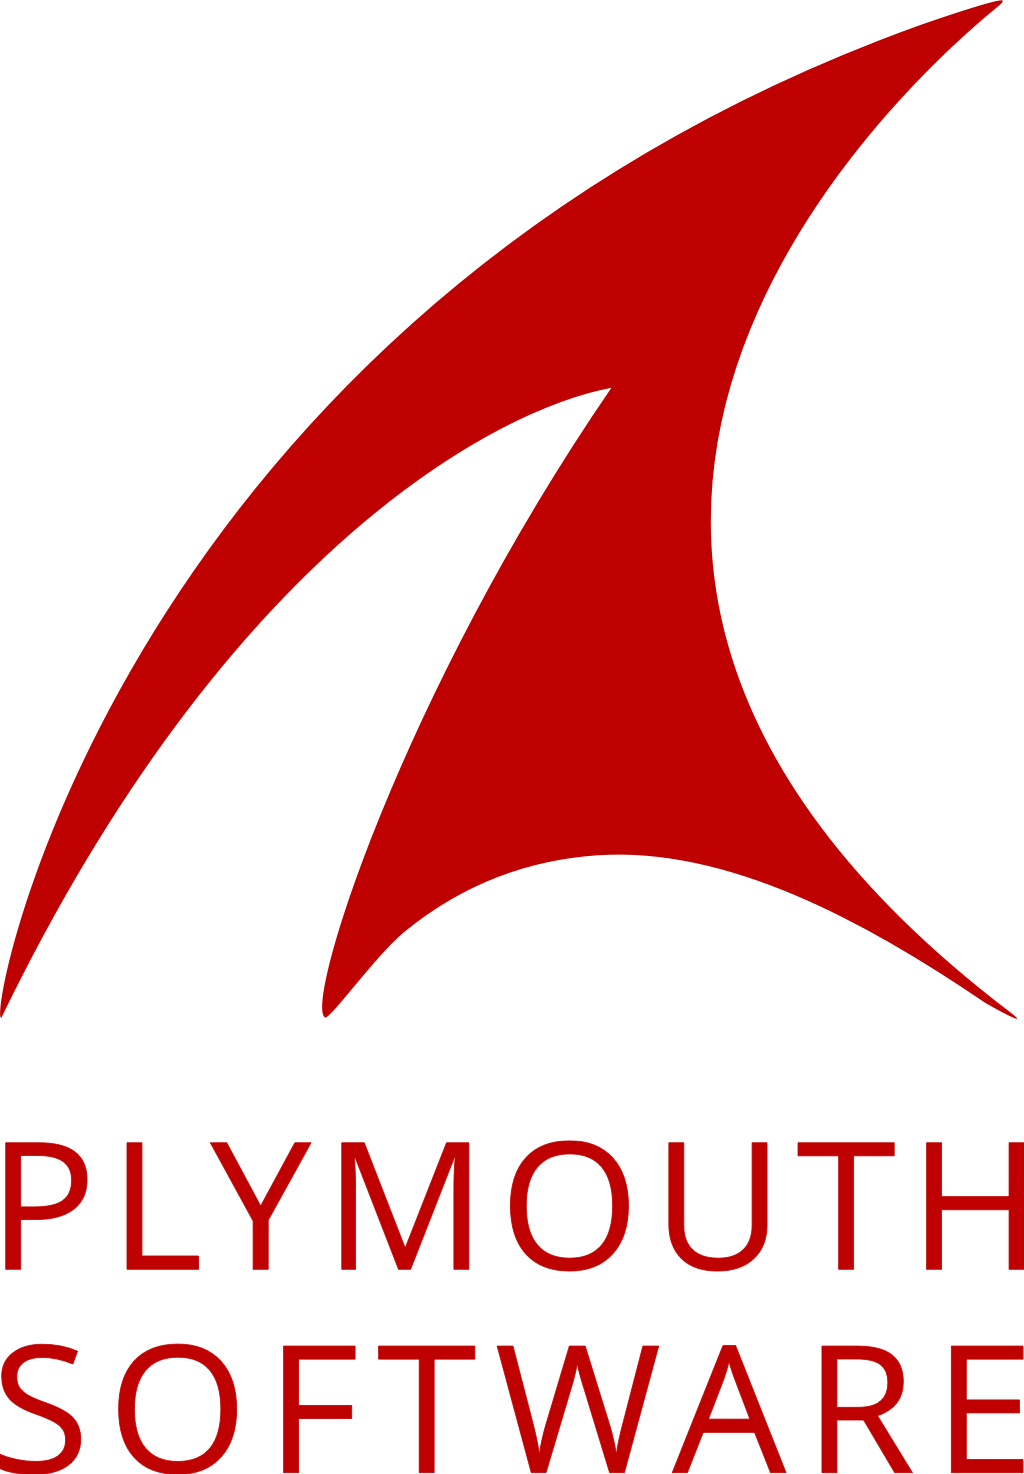 plymouth software logo